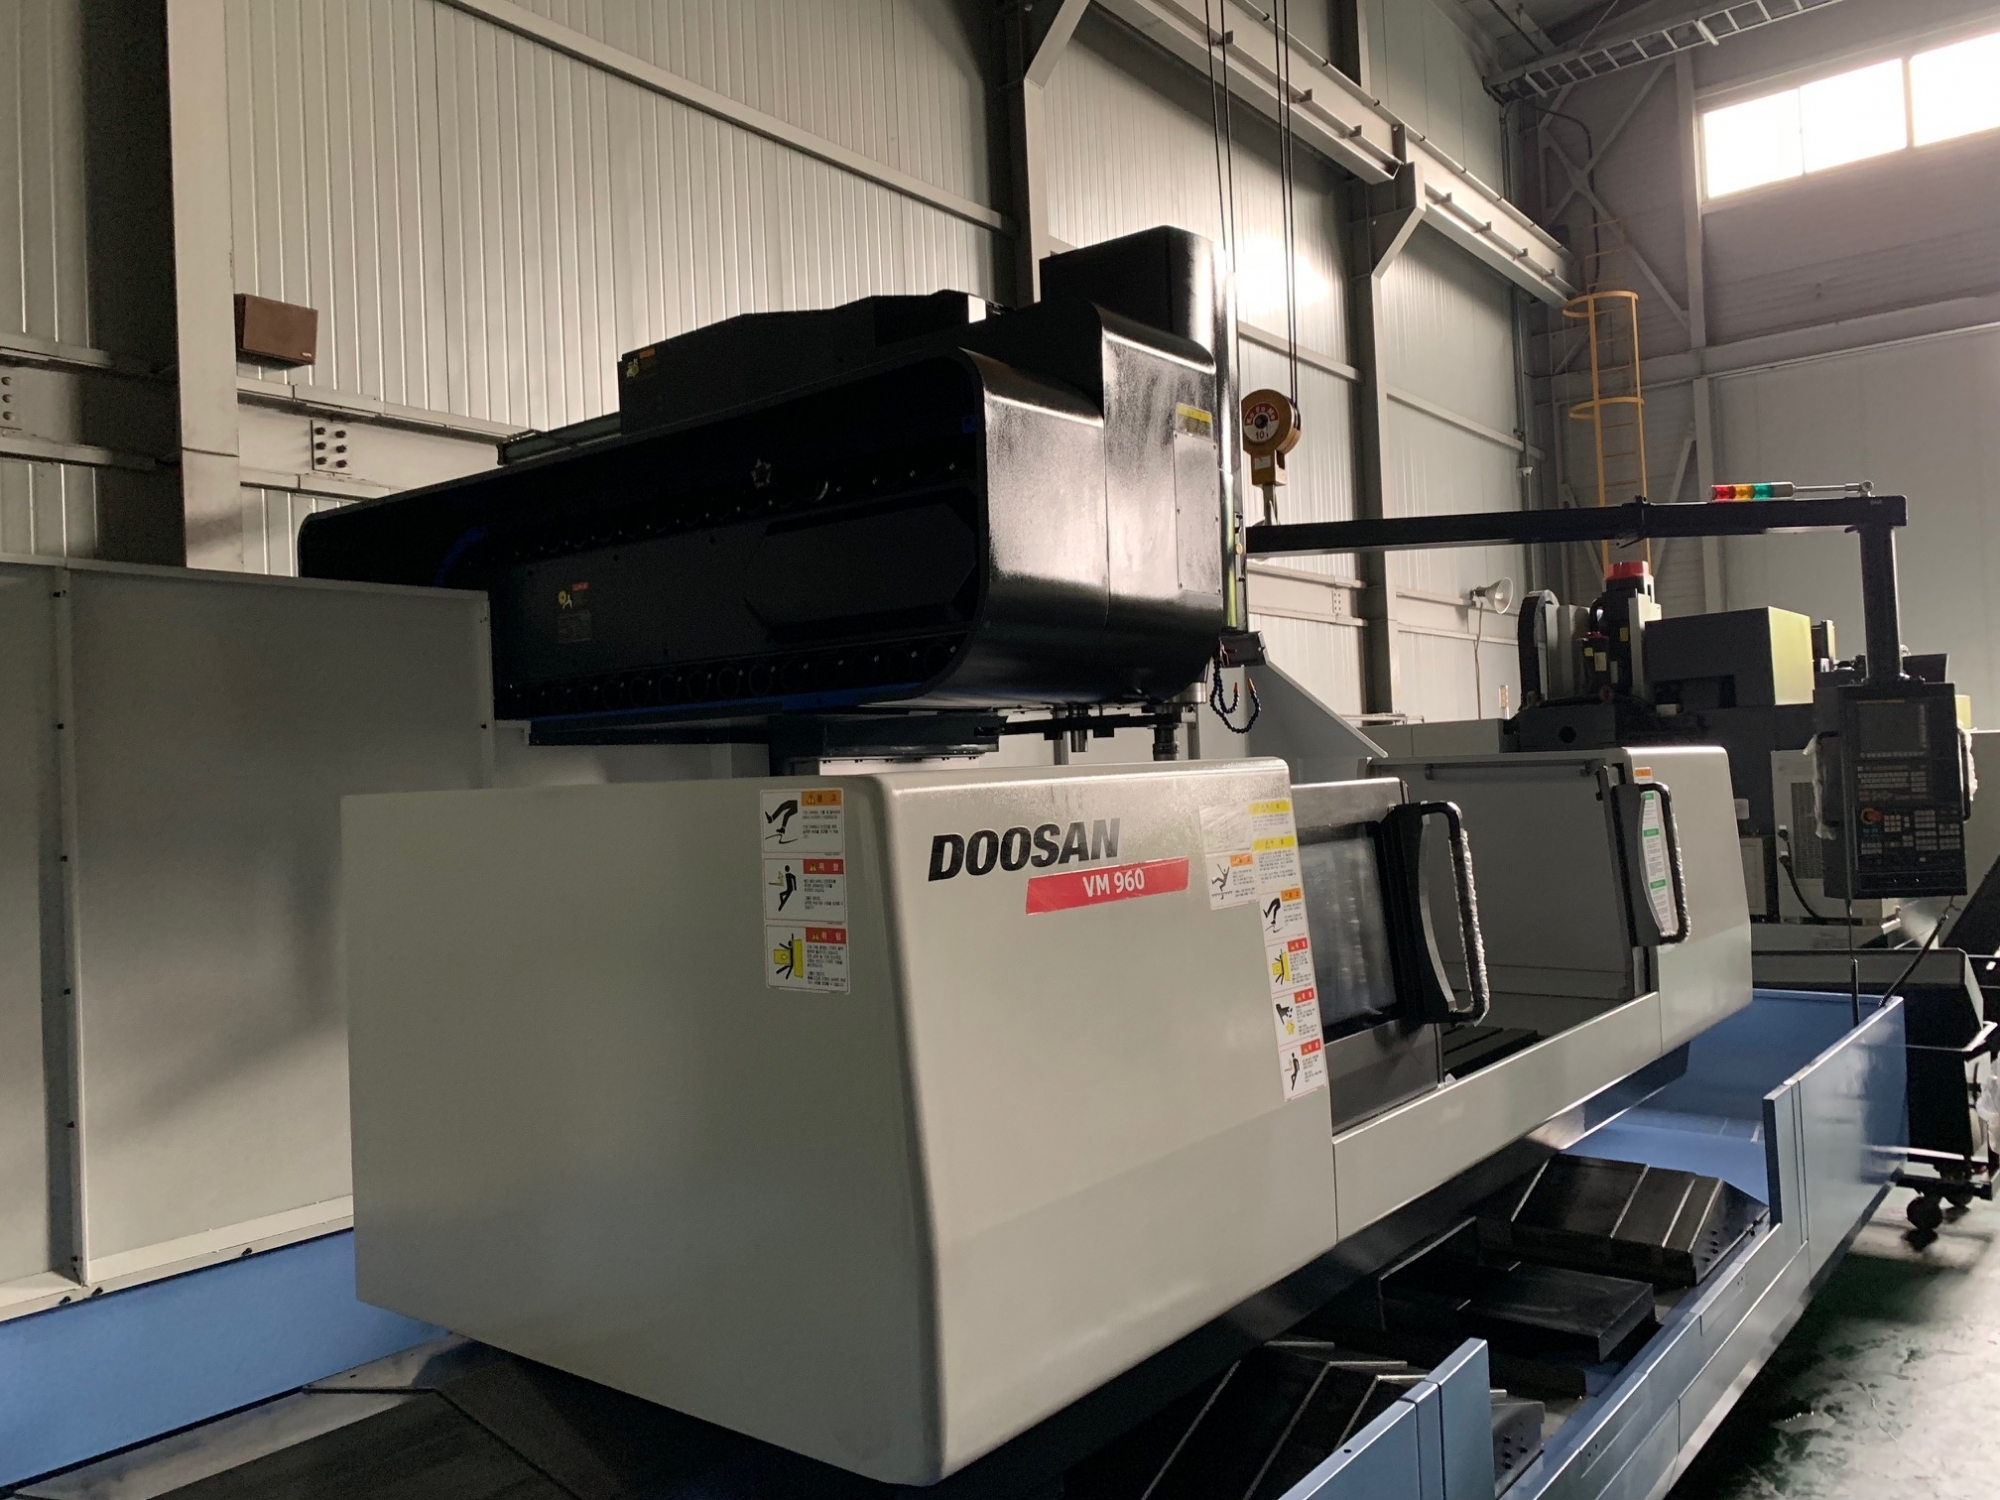 2014 Doosan VM-960 - Vertical Machining Center